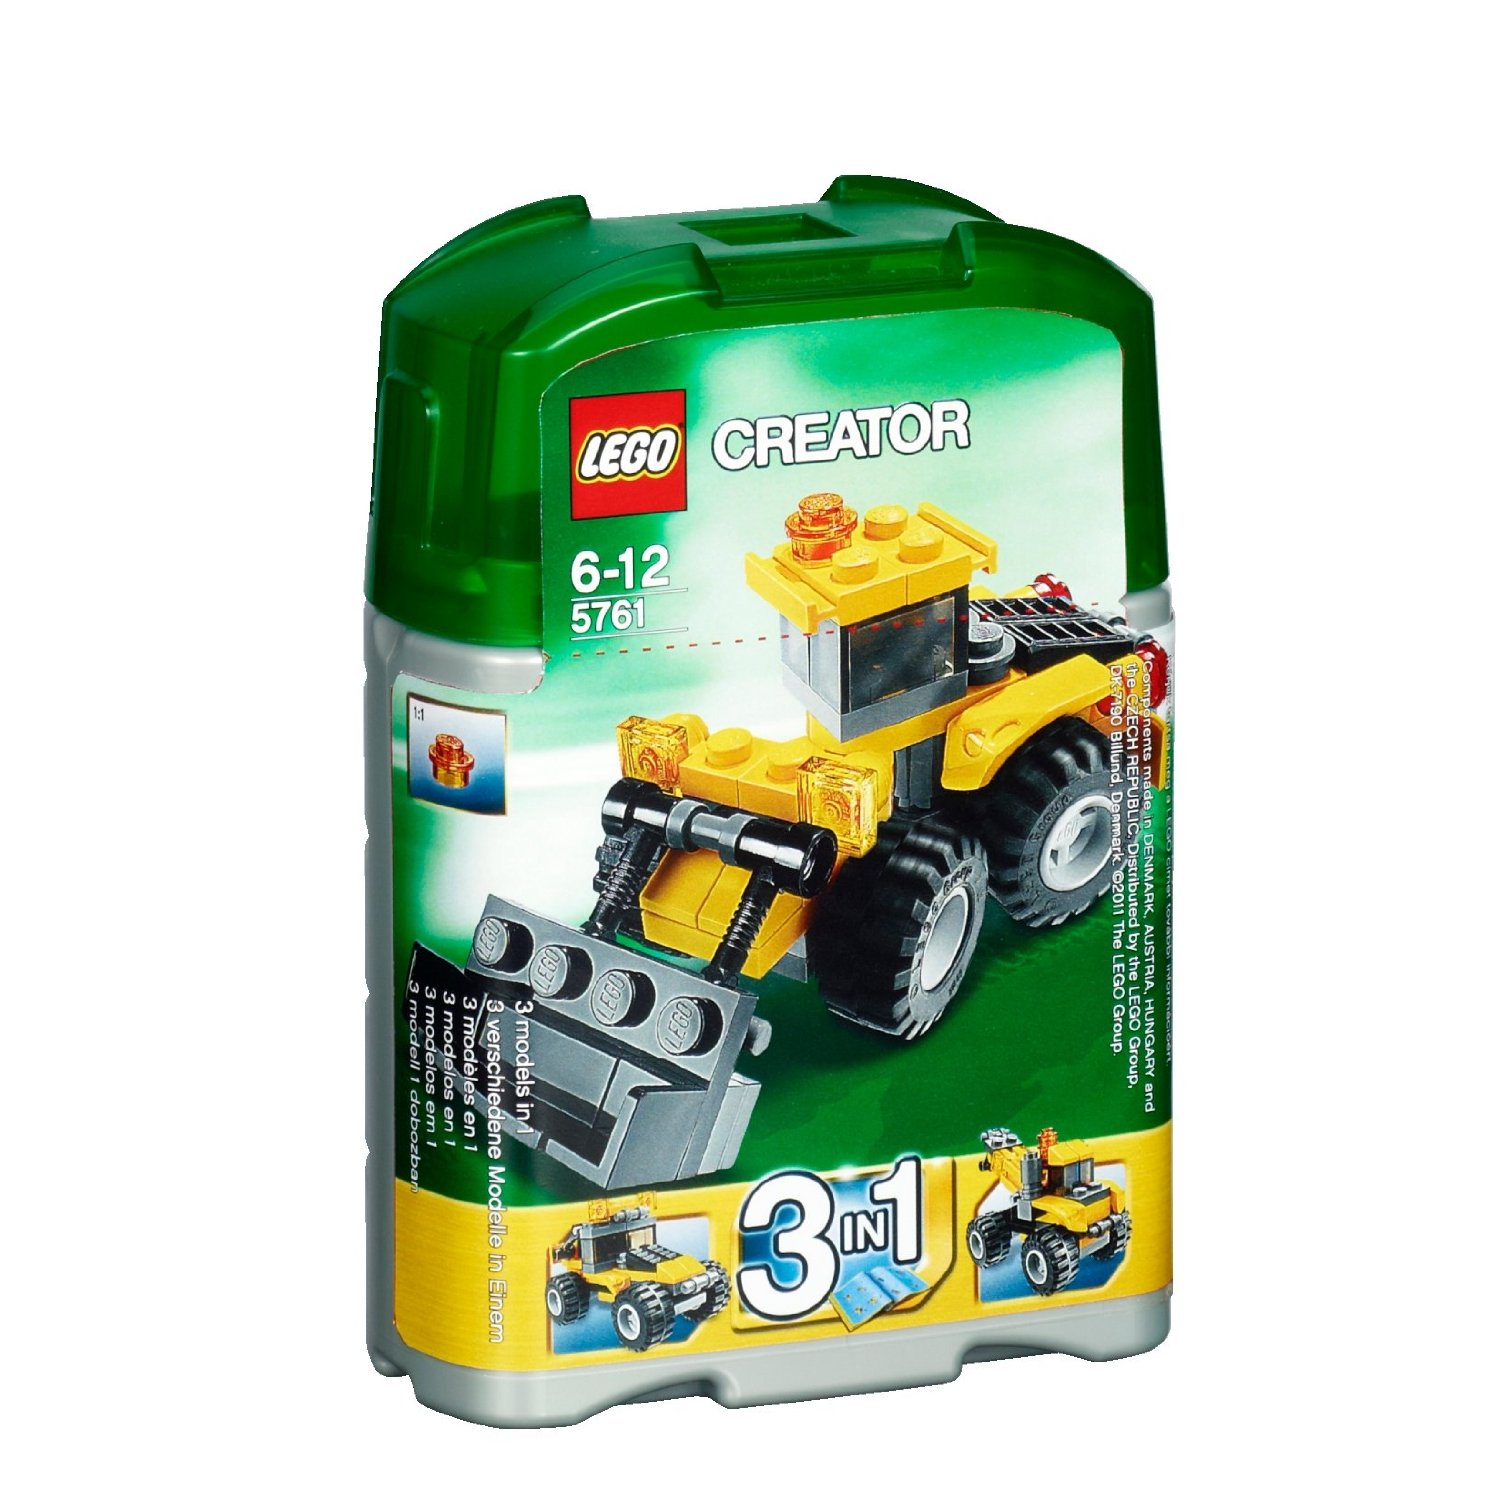 Ultrajeux creator 5761 la mini pelleteuse lego - Jeux de construction lego technic ...